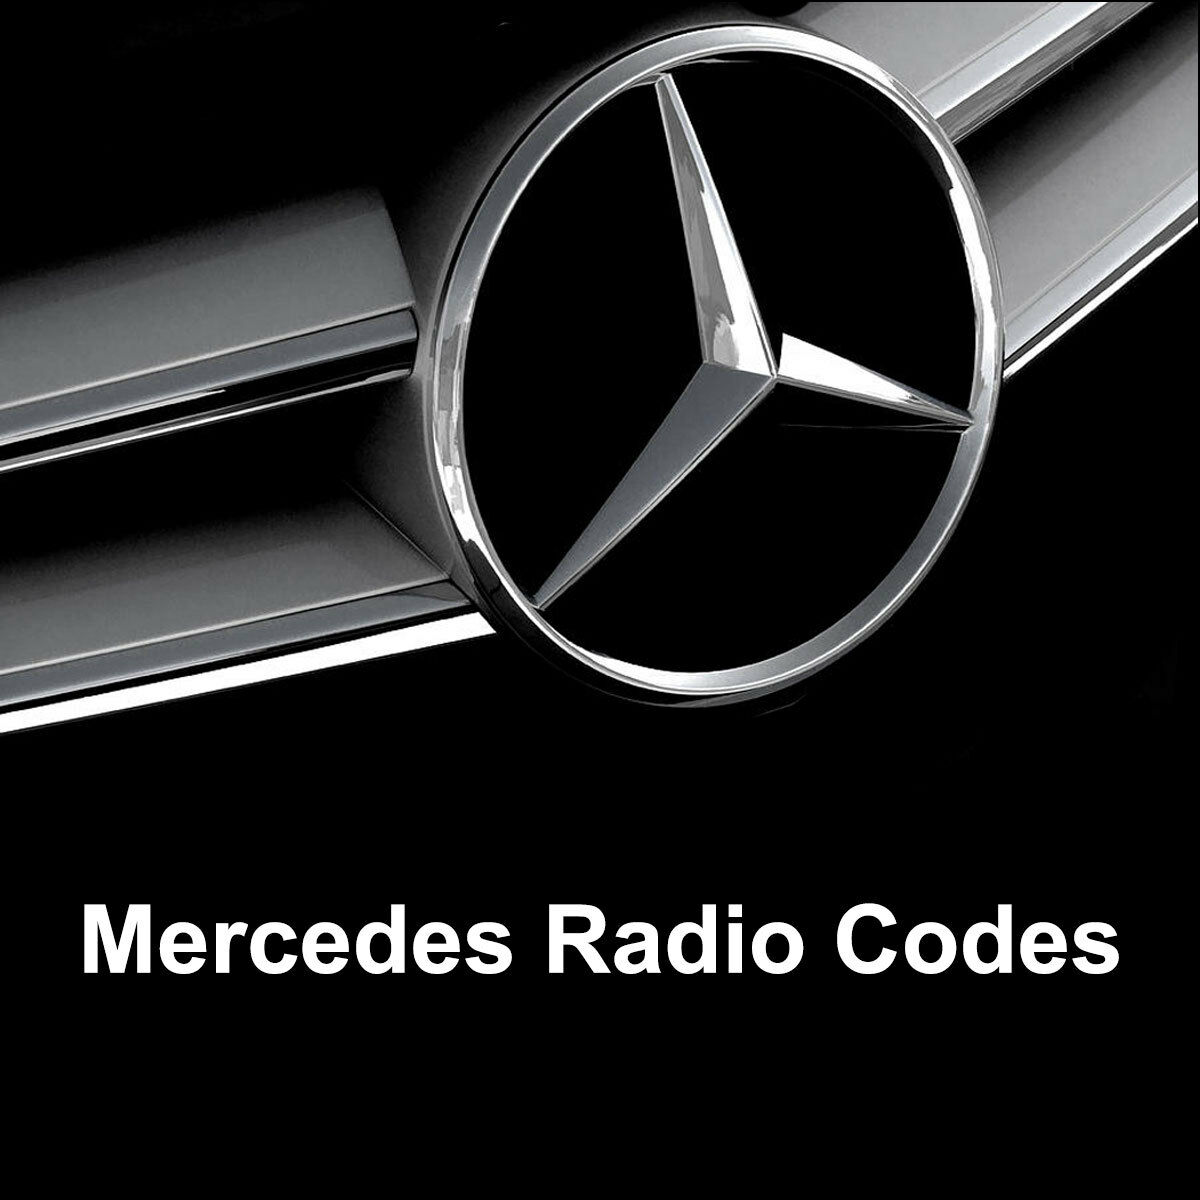 Mercedes radio code alpine audio 10 mf2910 al2910 car for Mercedes benz radio code